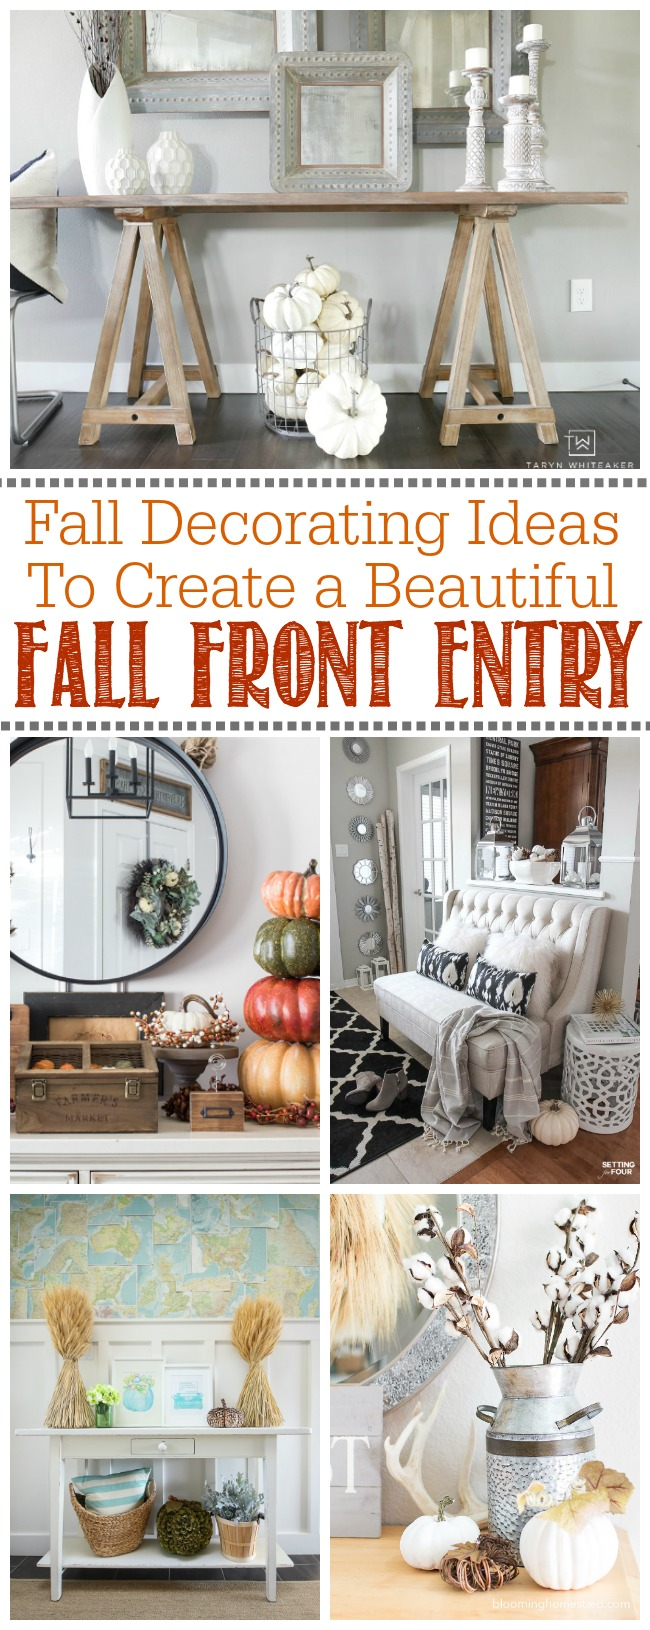 Beautiful collection of fall decorating ideas for the front entry. Easy ideas to create a cozy and welcoming fall front entry.